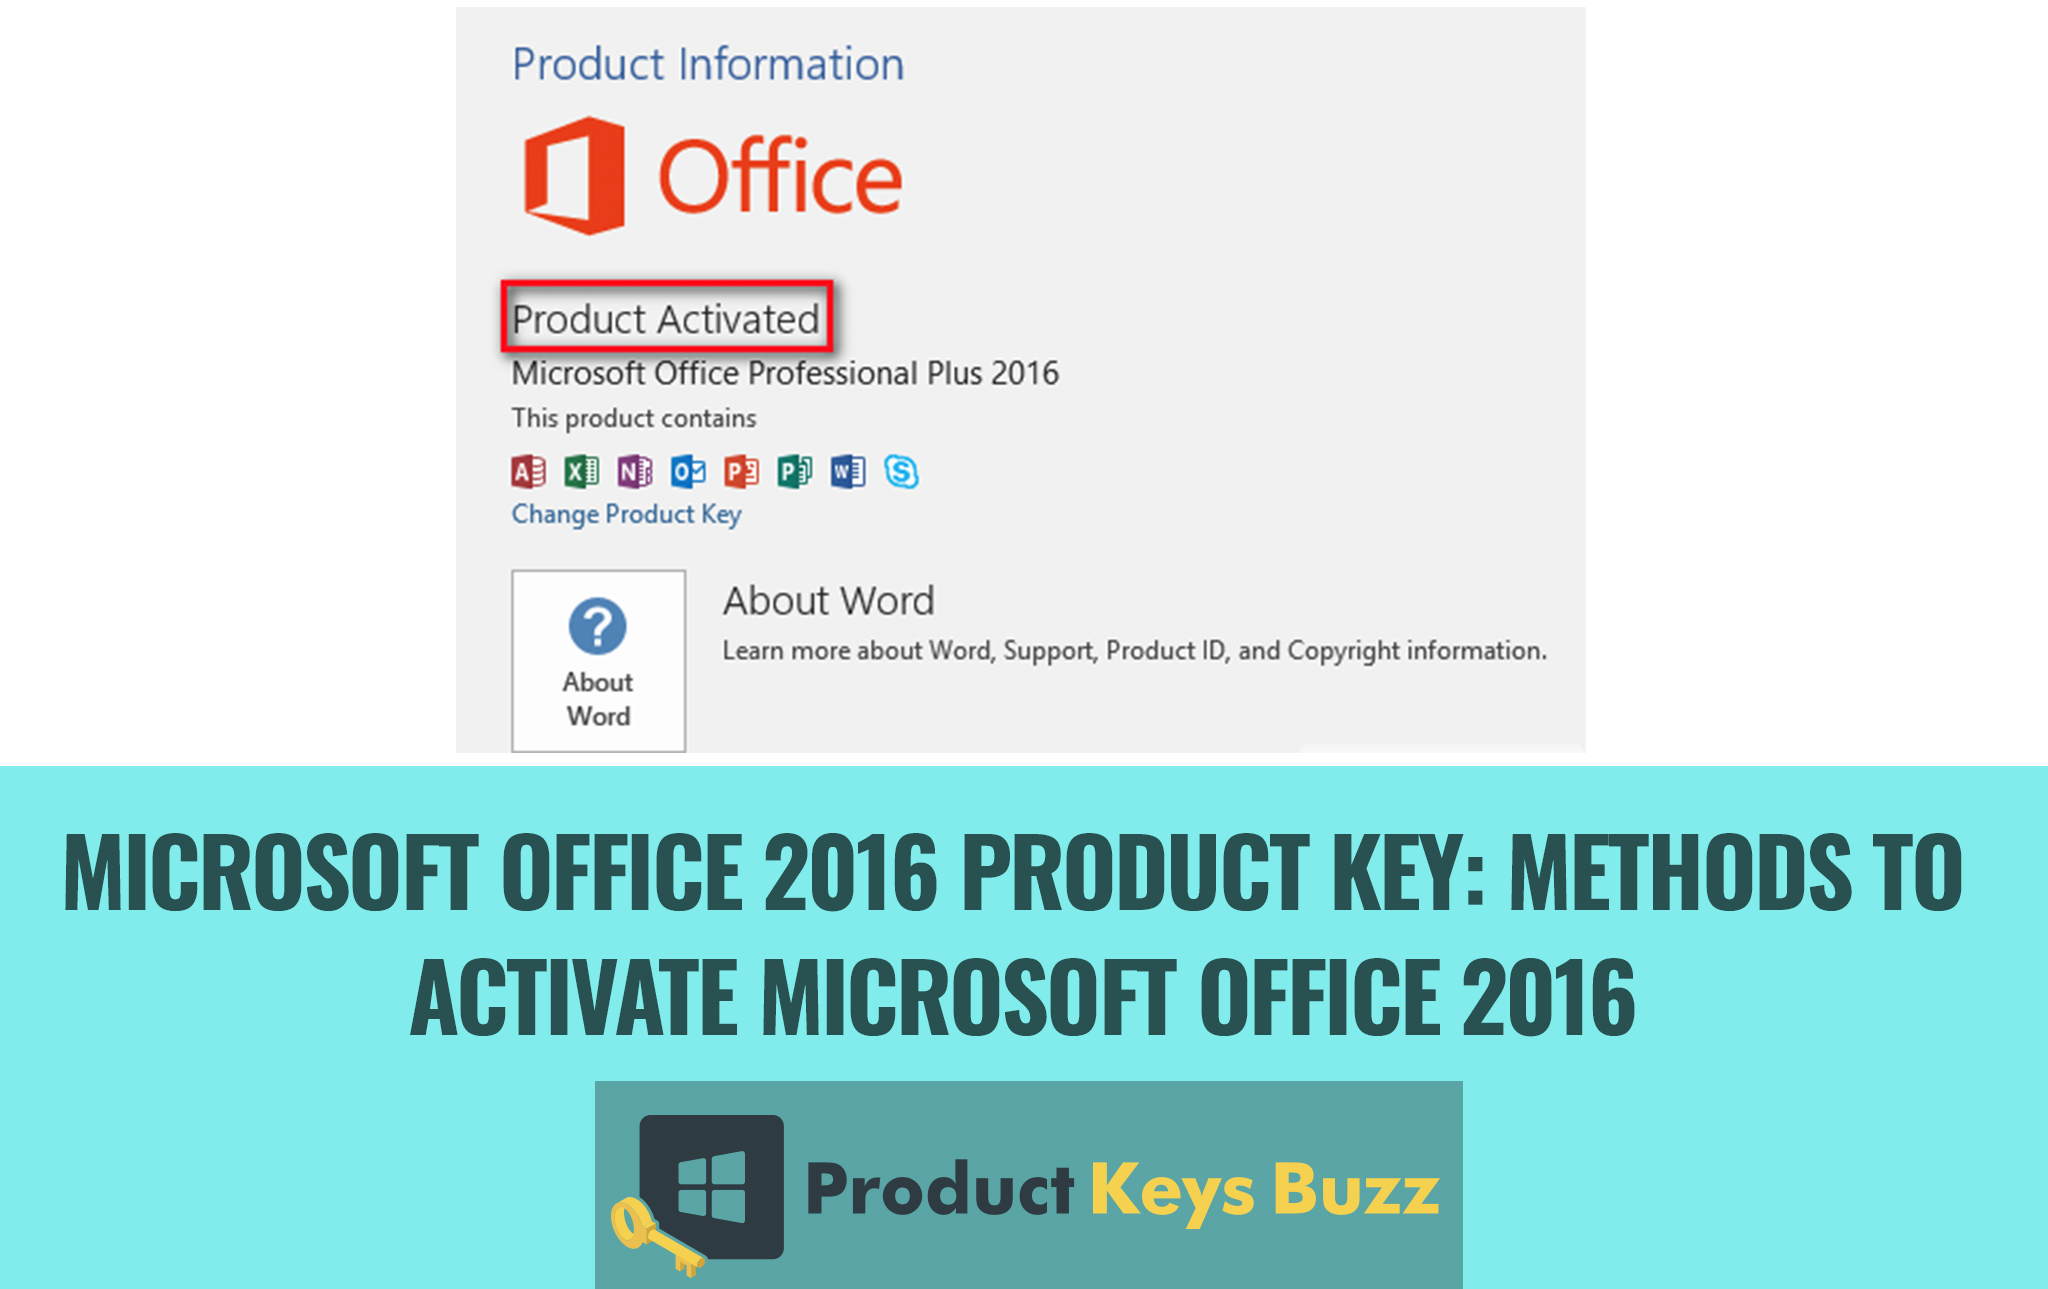 Microsoft Office 2016 Product Key Methods to Activate Microsoft Office 2016